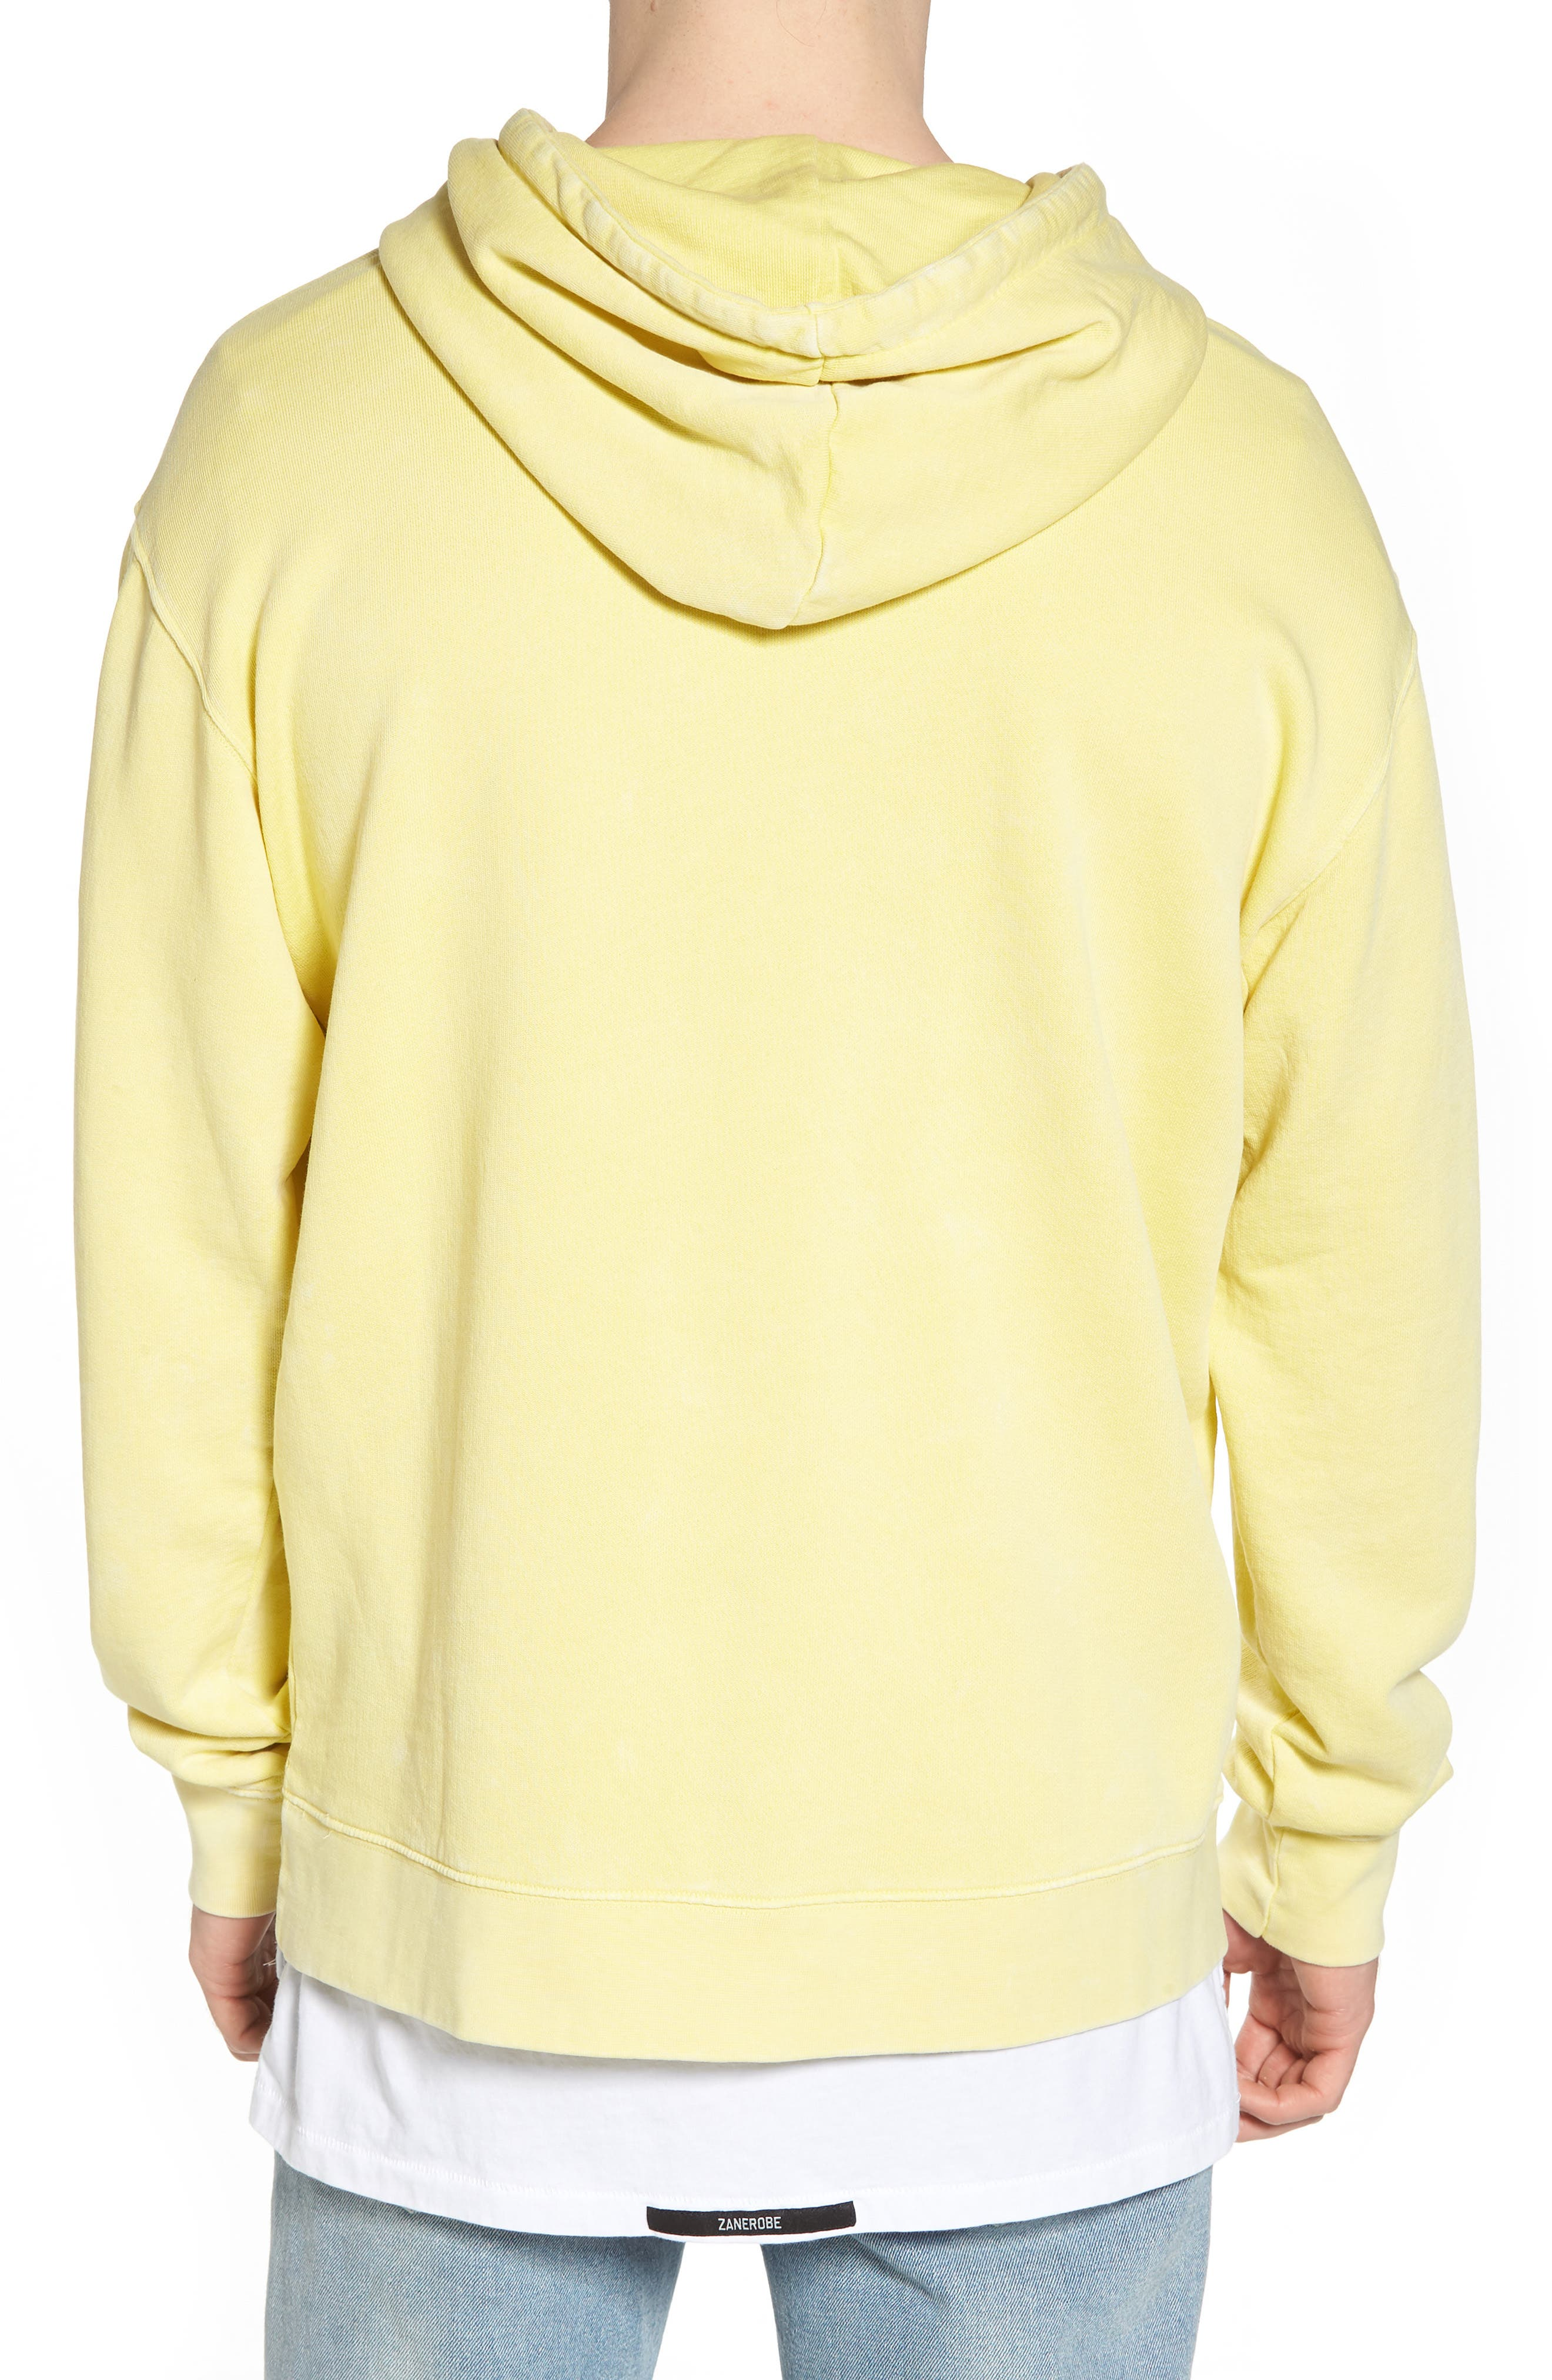 Faded Pigment Dyed Hoodie Sweatshirt,                             Alternate thumbnail 2, color,                             700